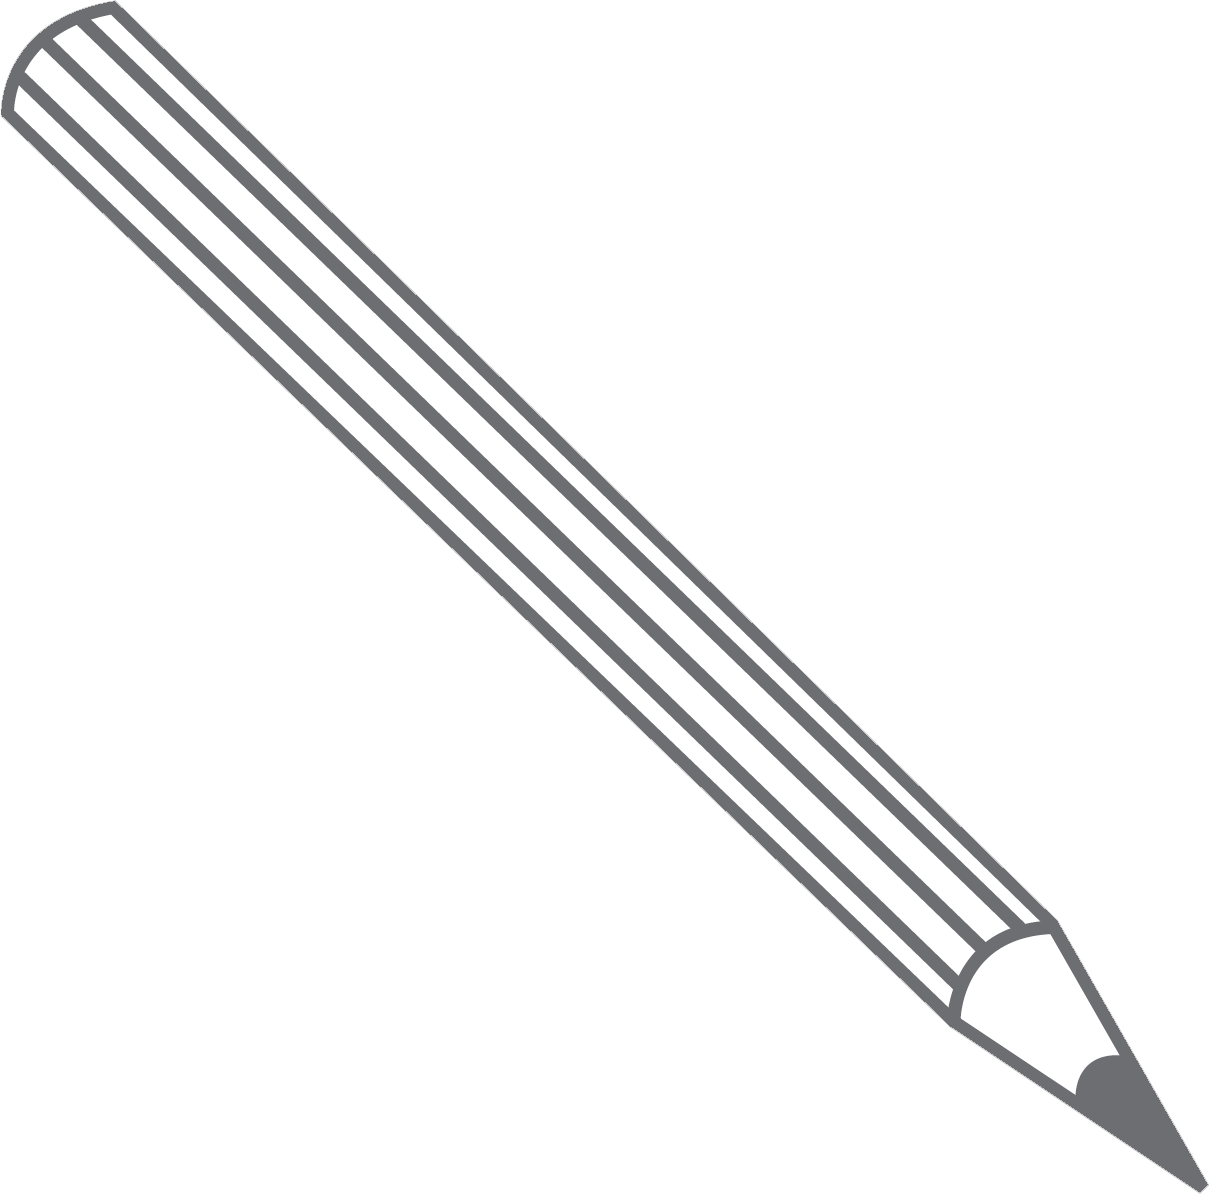 A drawing of a pencil